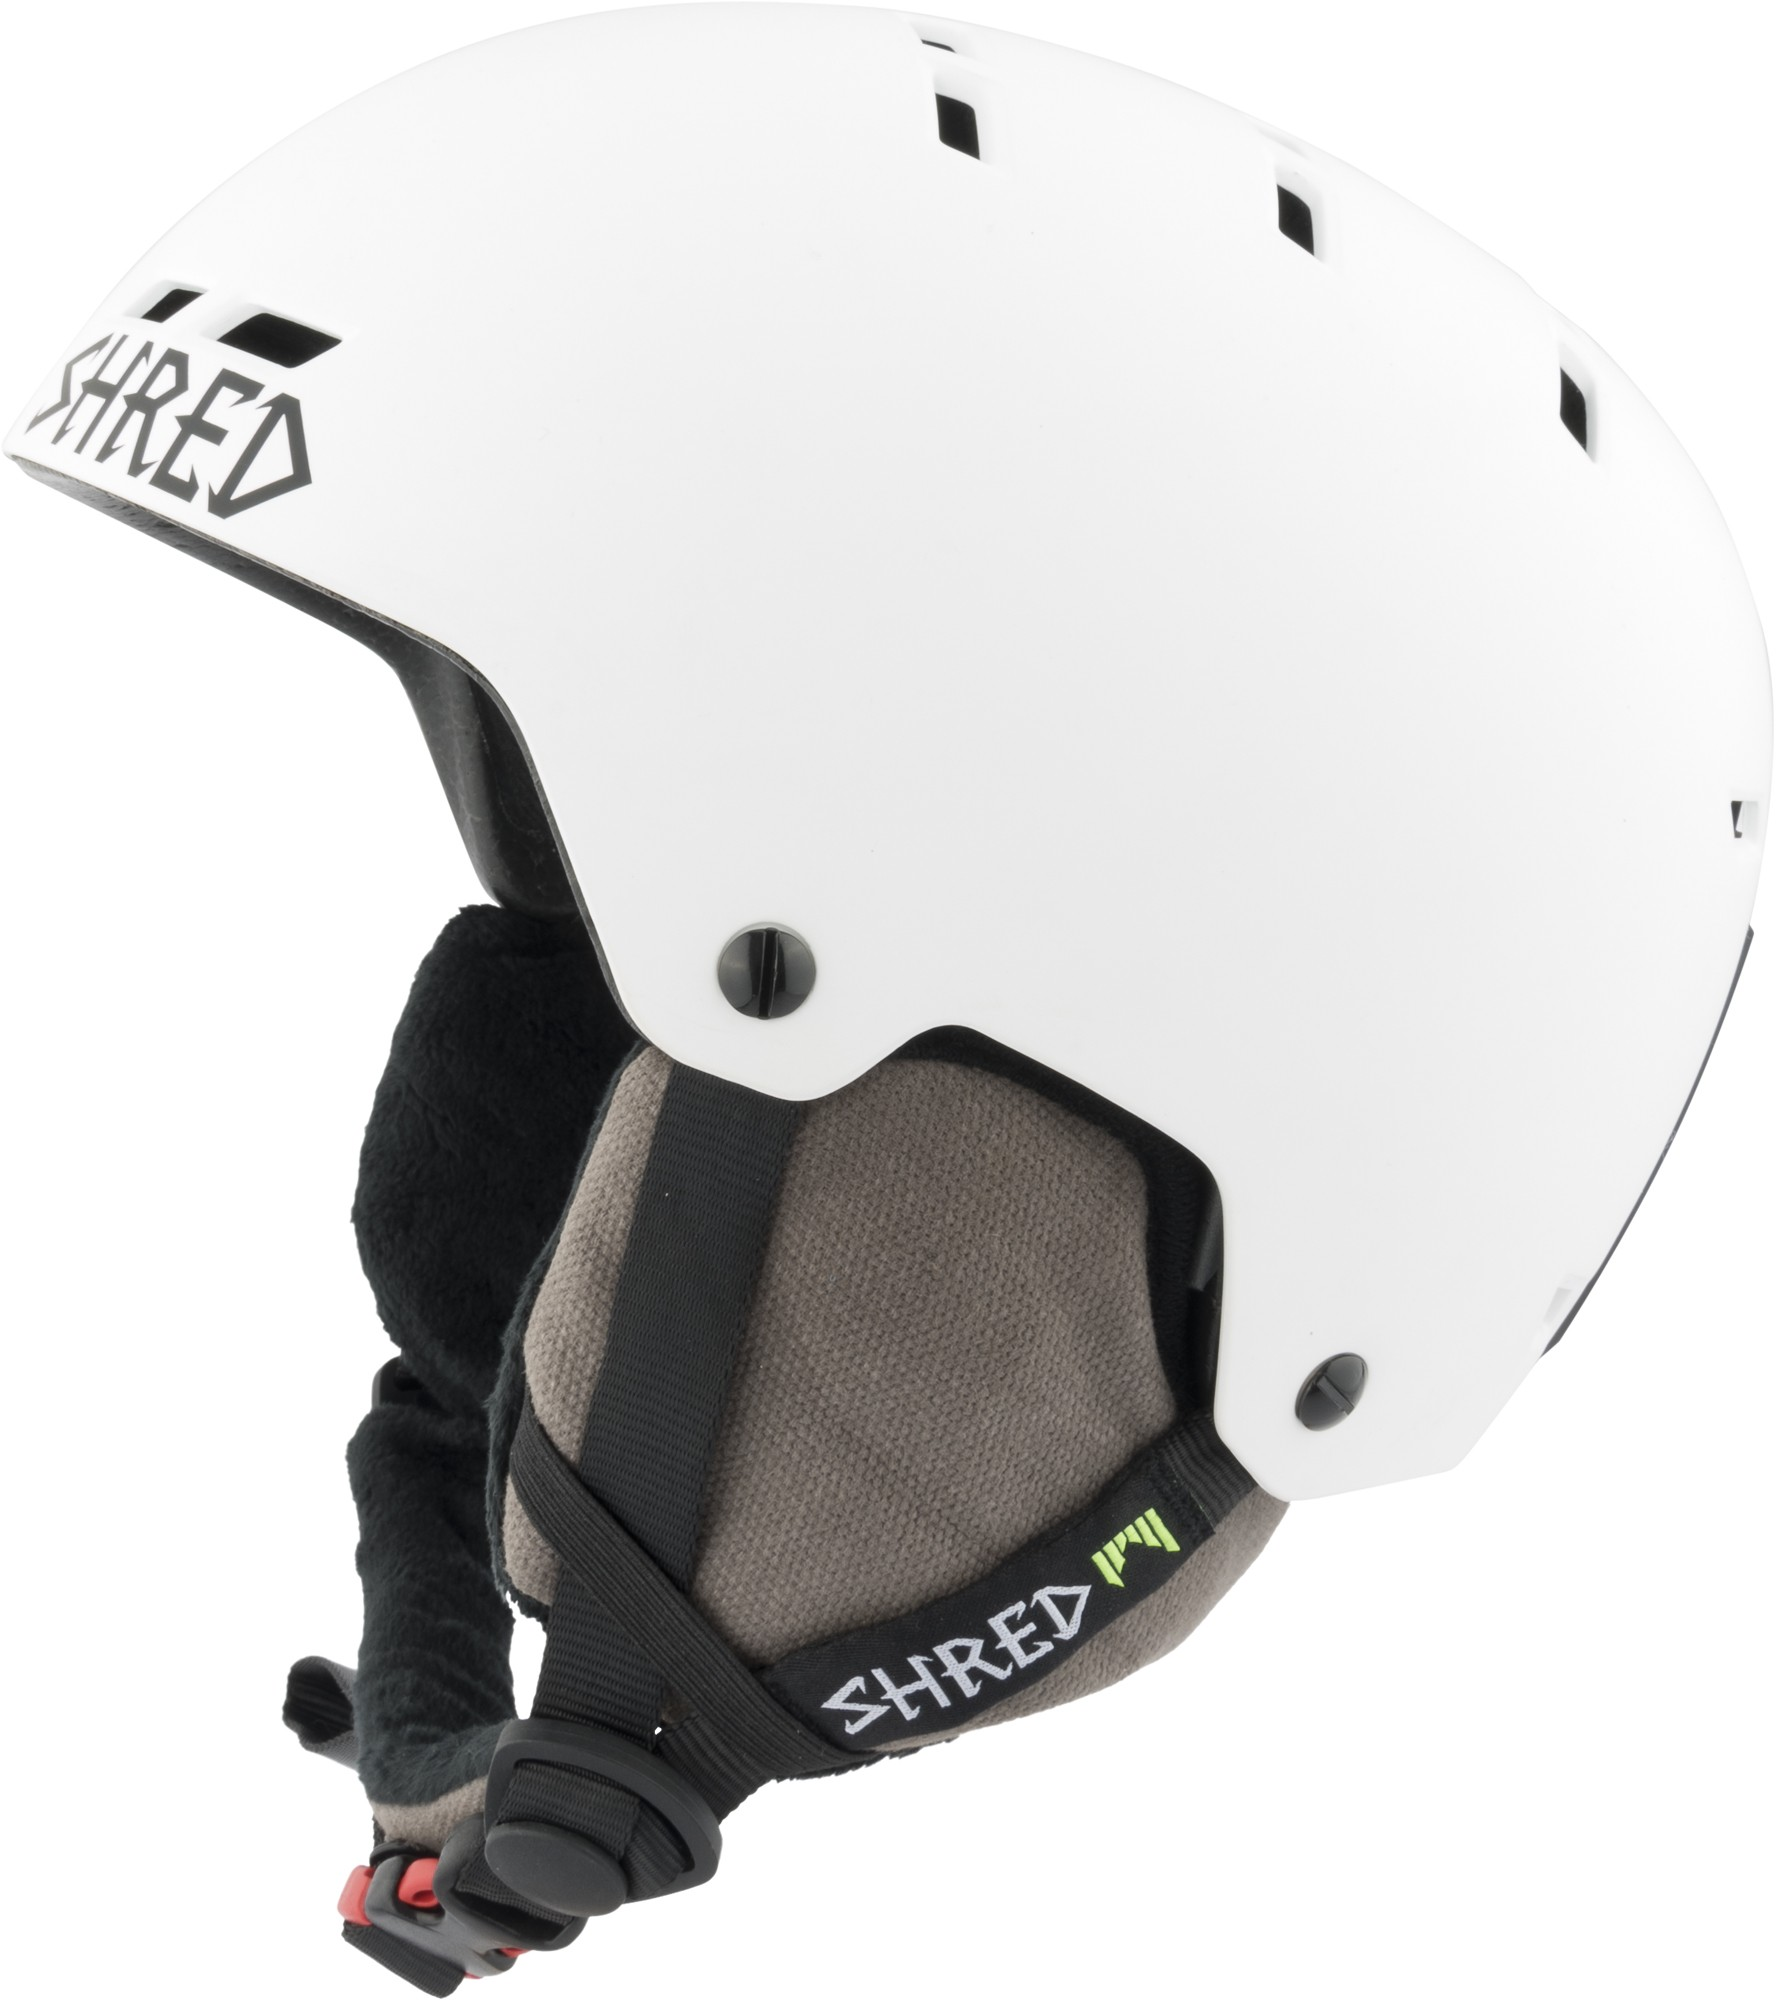 Shred BUMPER NoShock warm BLEACH ski helmet, 2017